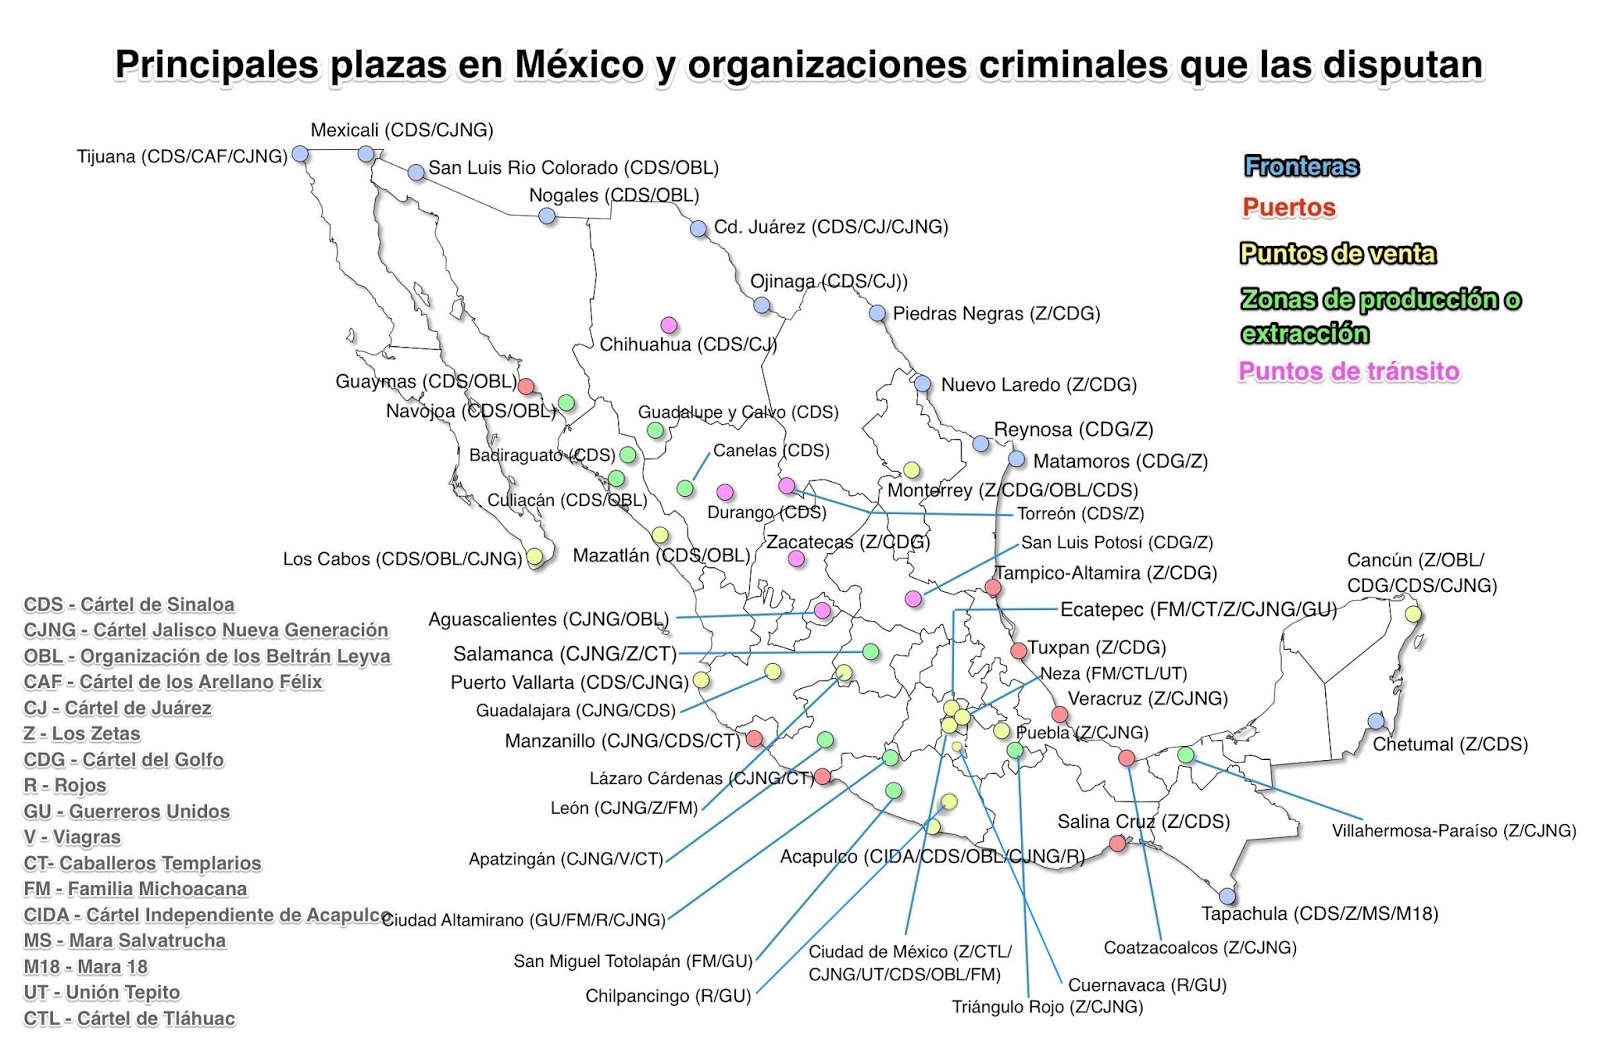 Plazas of organized crime narco plaza map